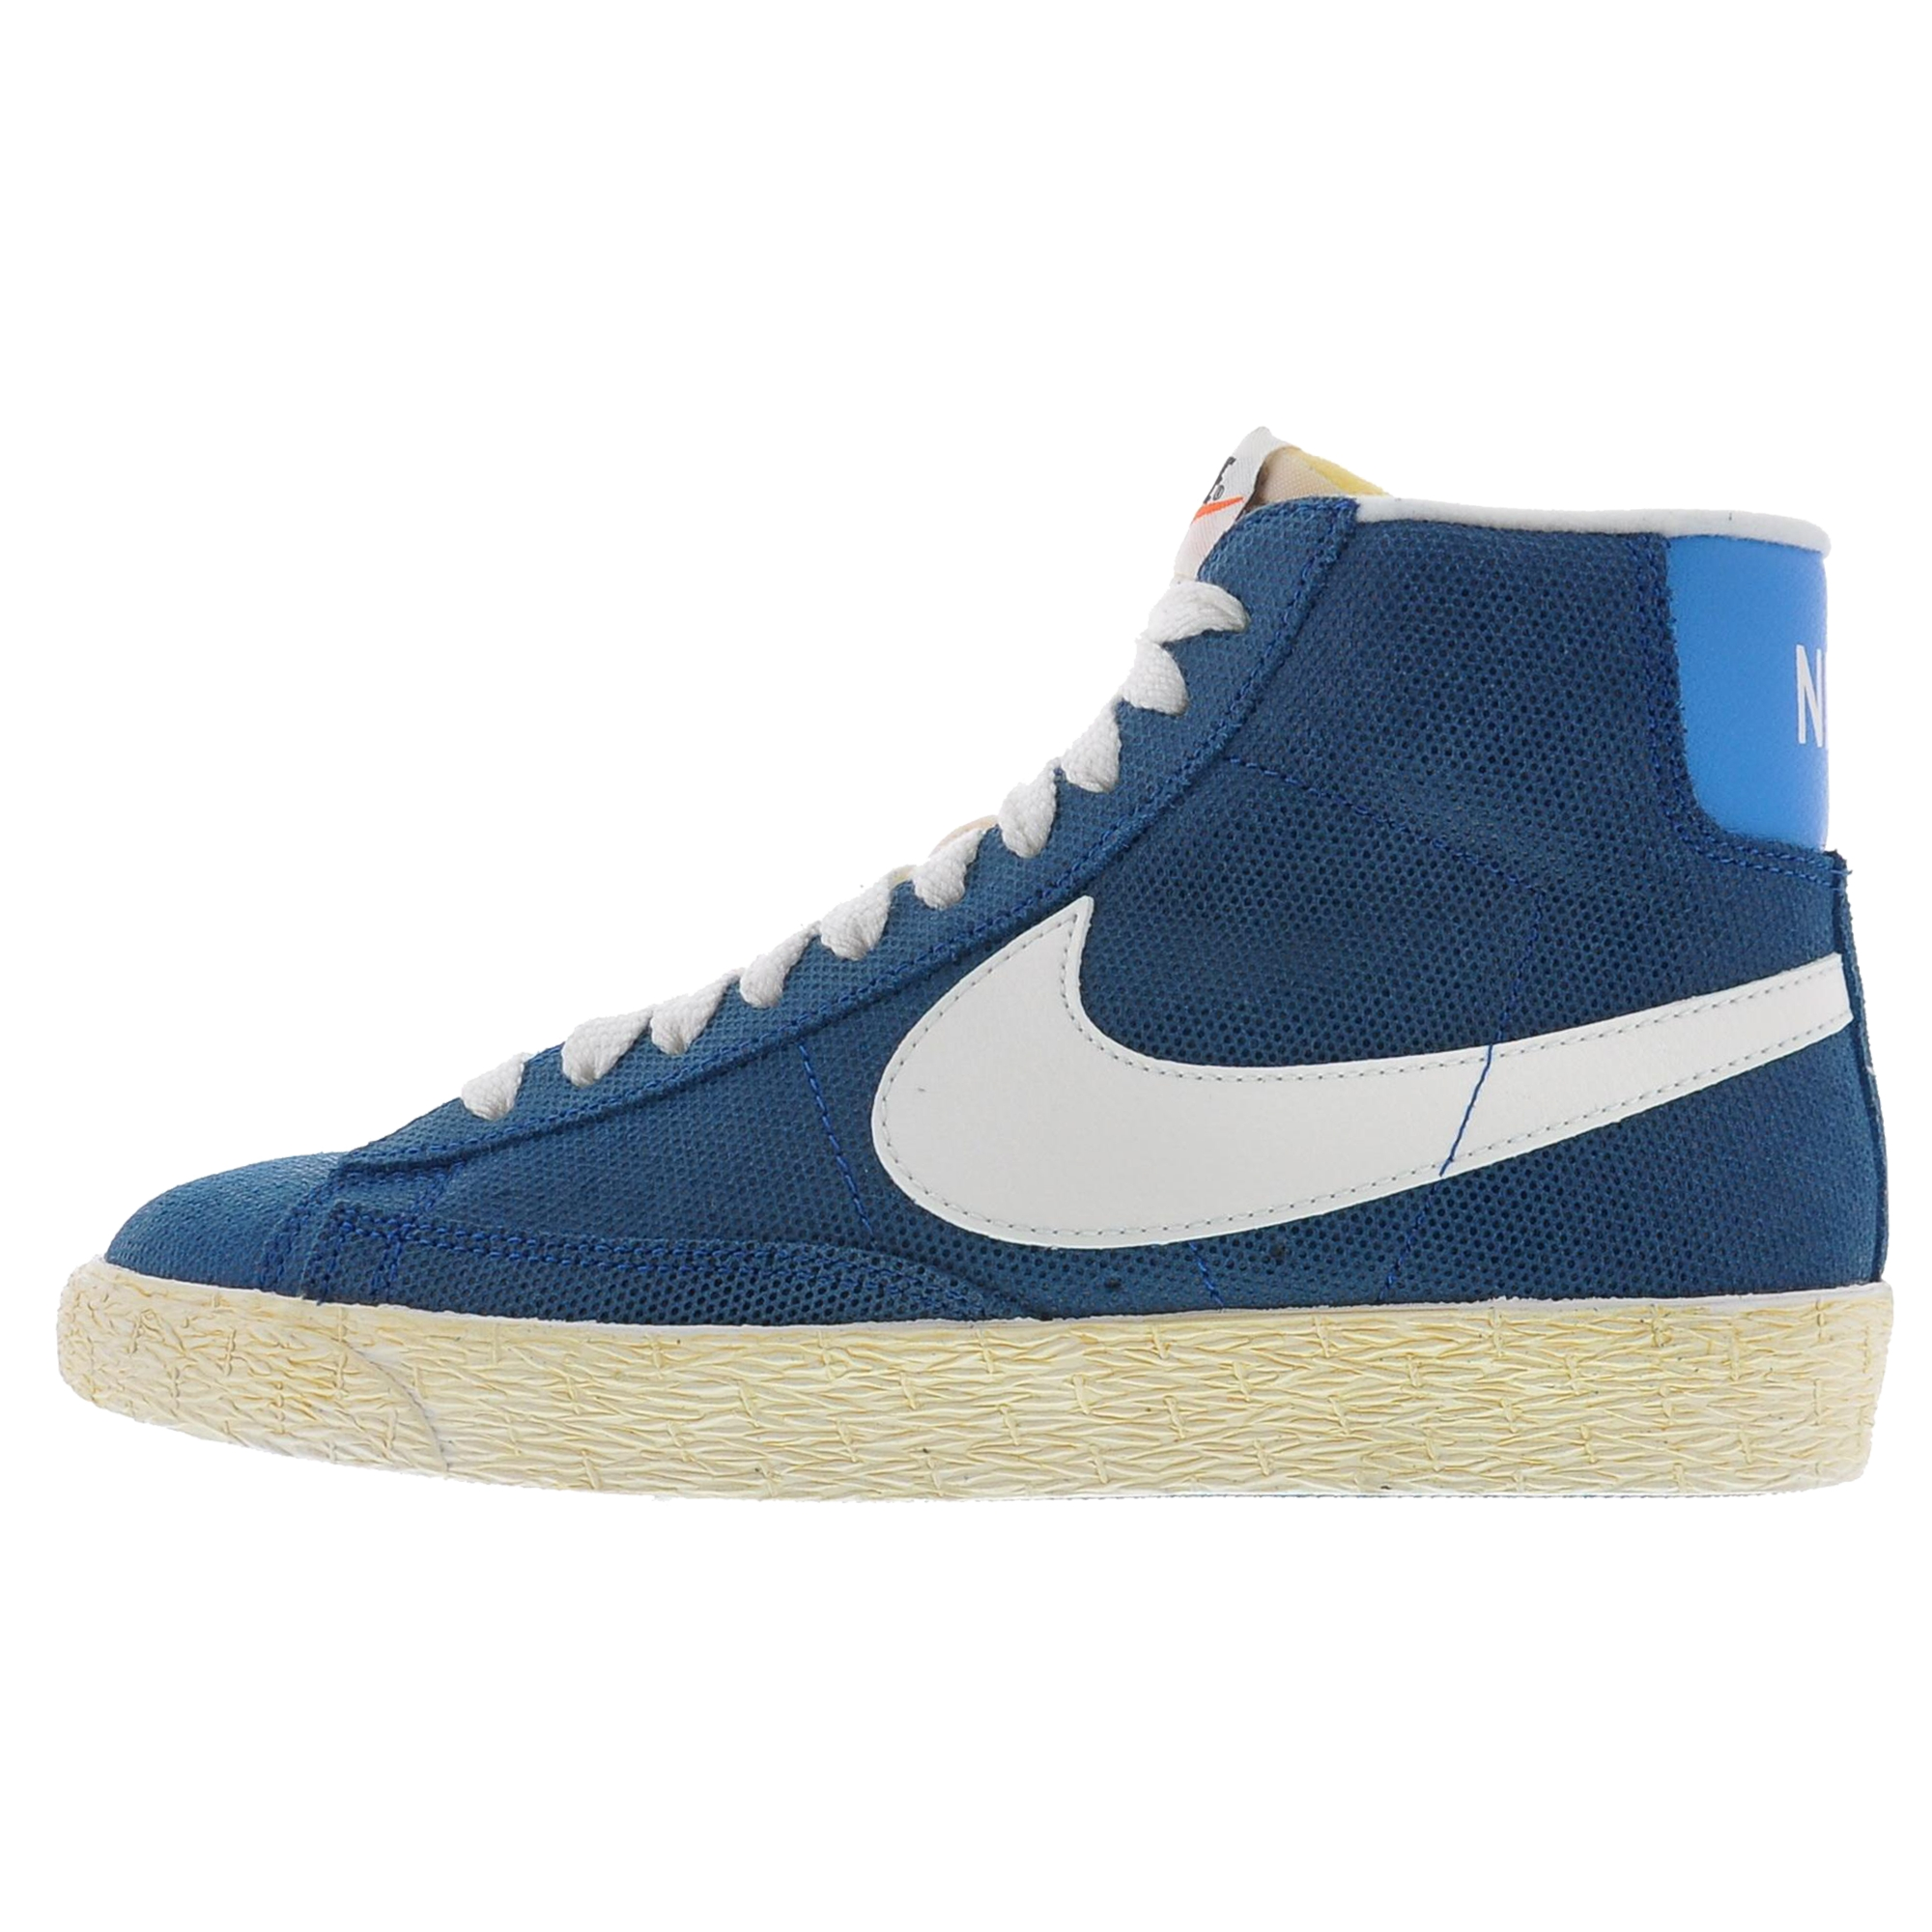 original nike blazer mid vintage damen blau wei pictures. Black Bedroom Furniture Sets. Home Design Ideas